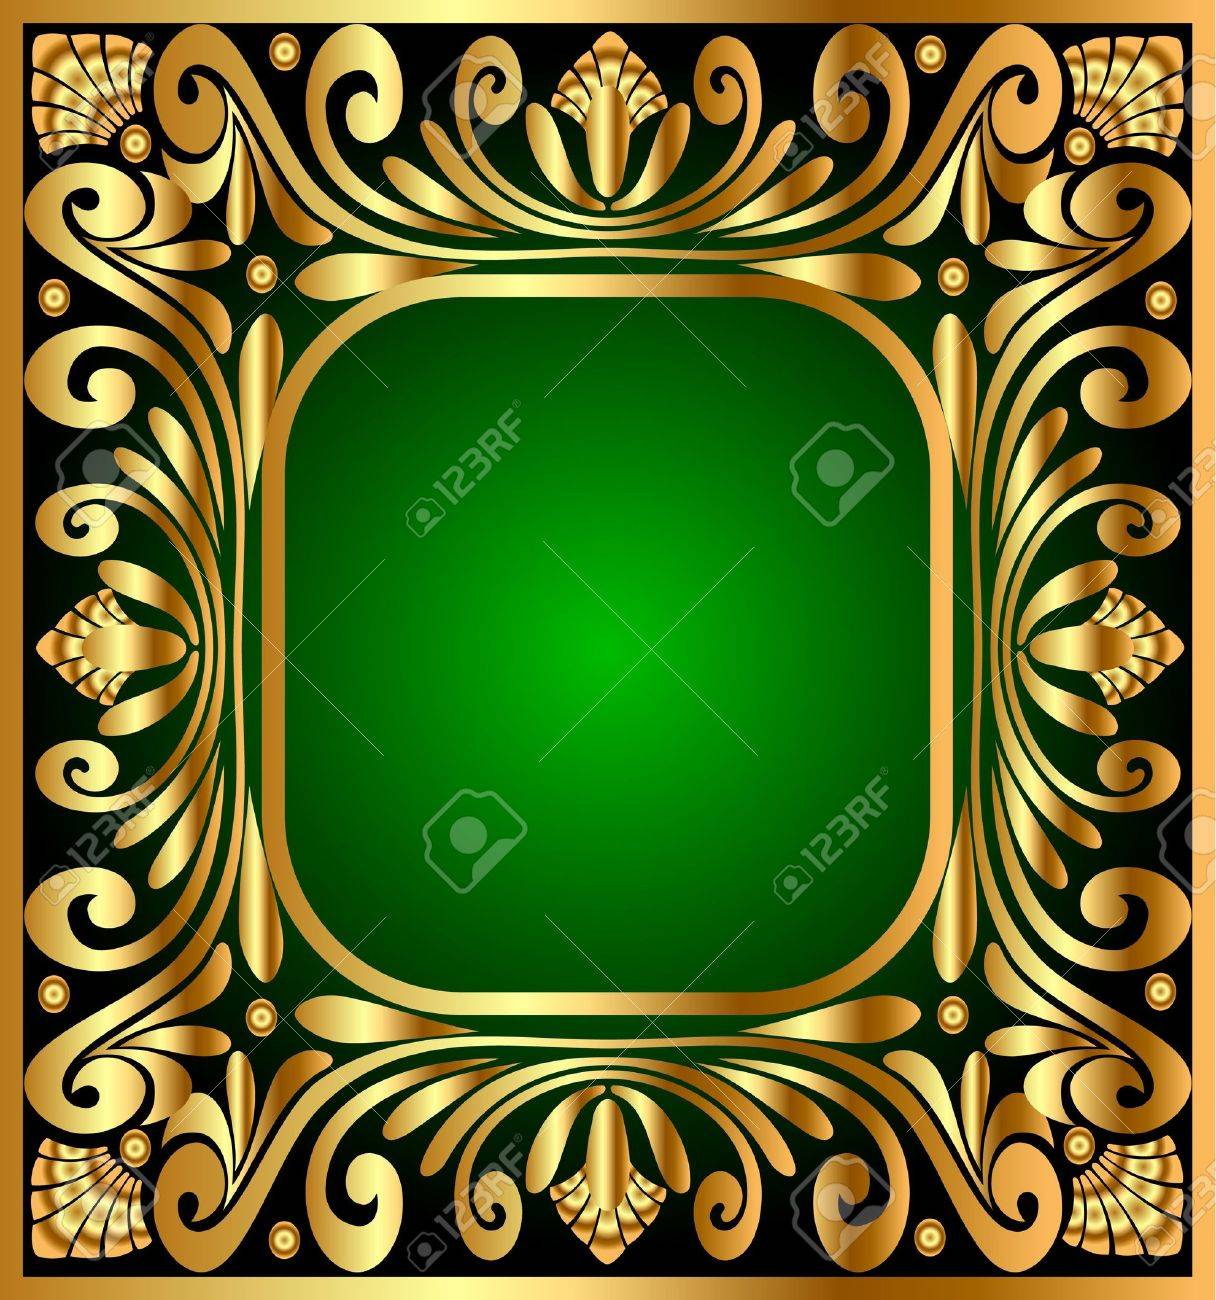 vector illustration square frame with golden antique pattern